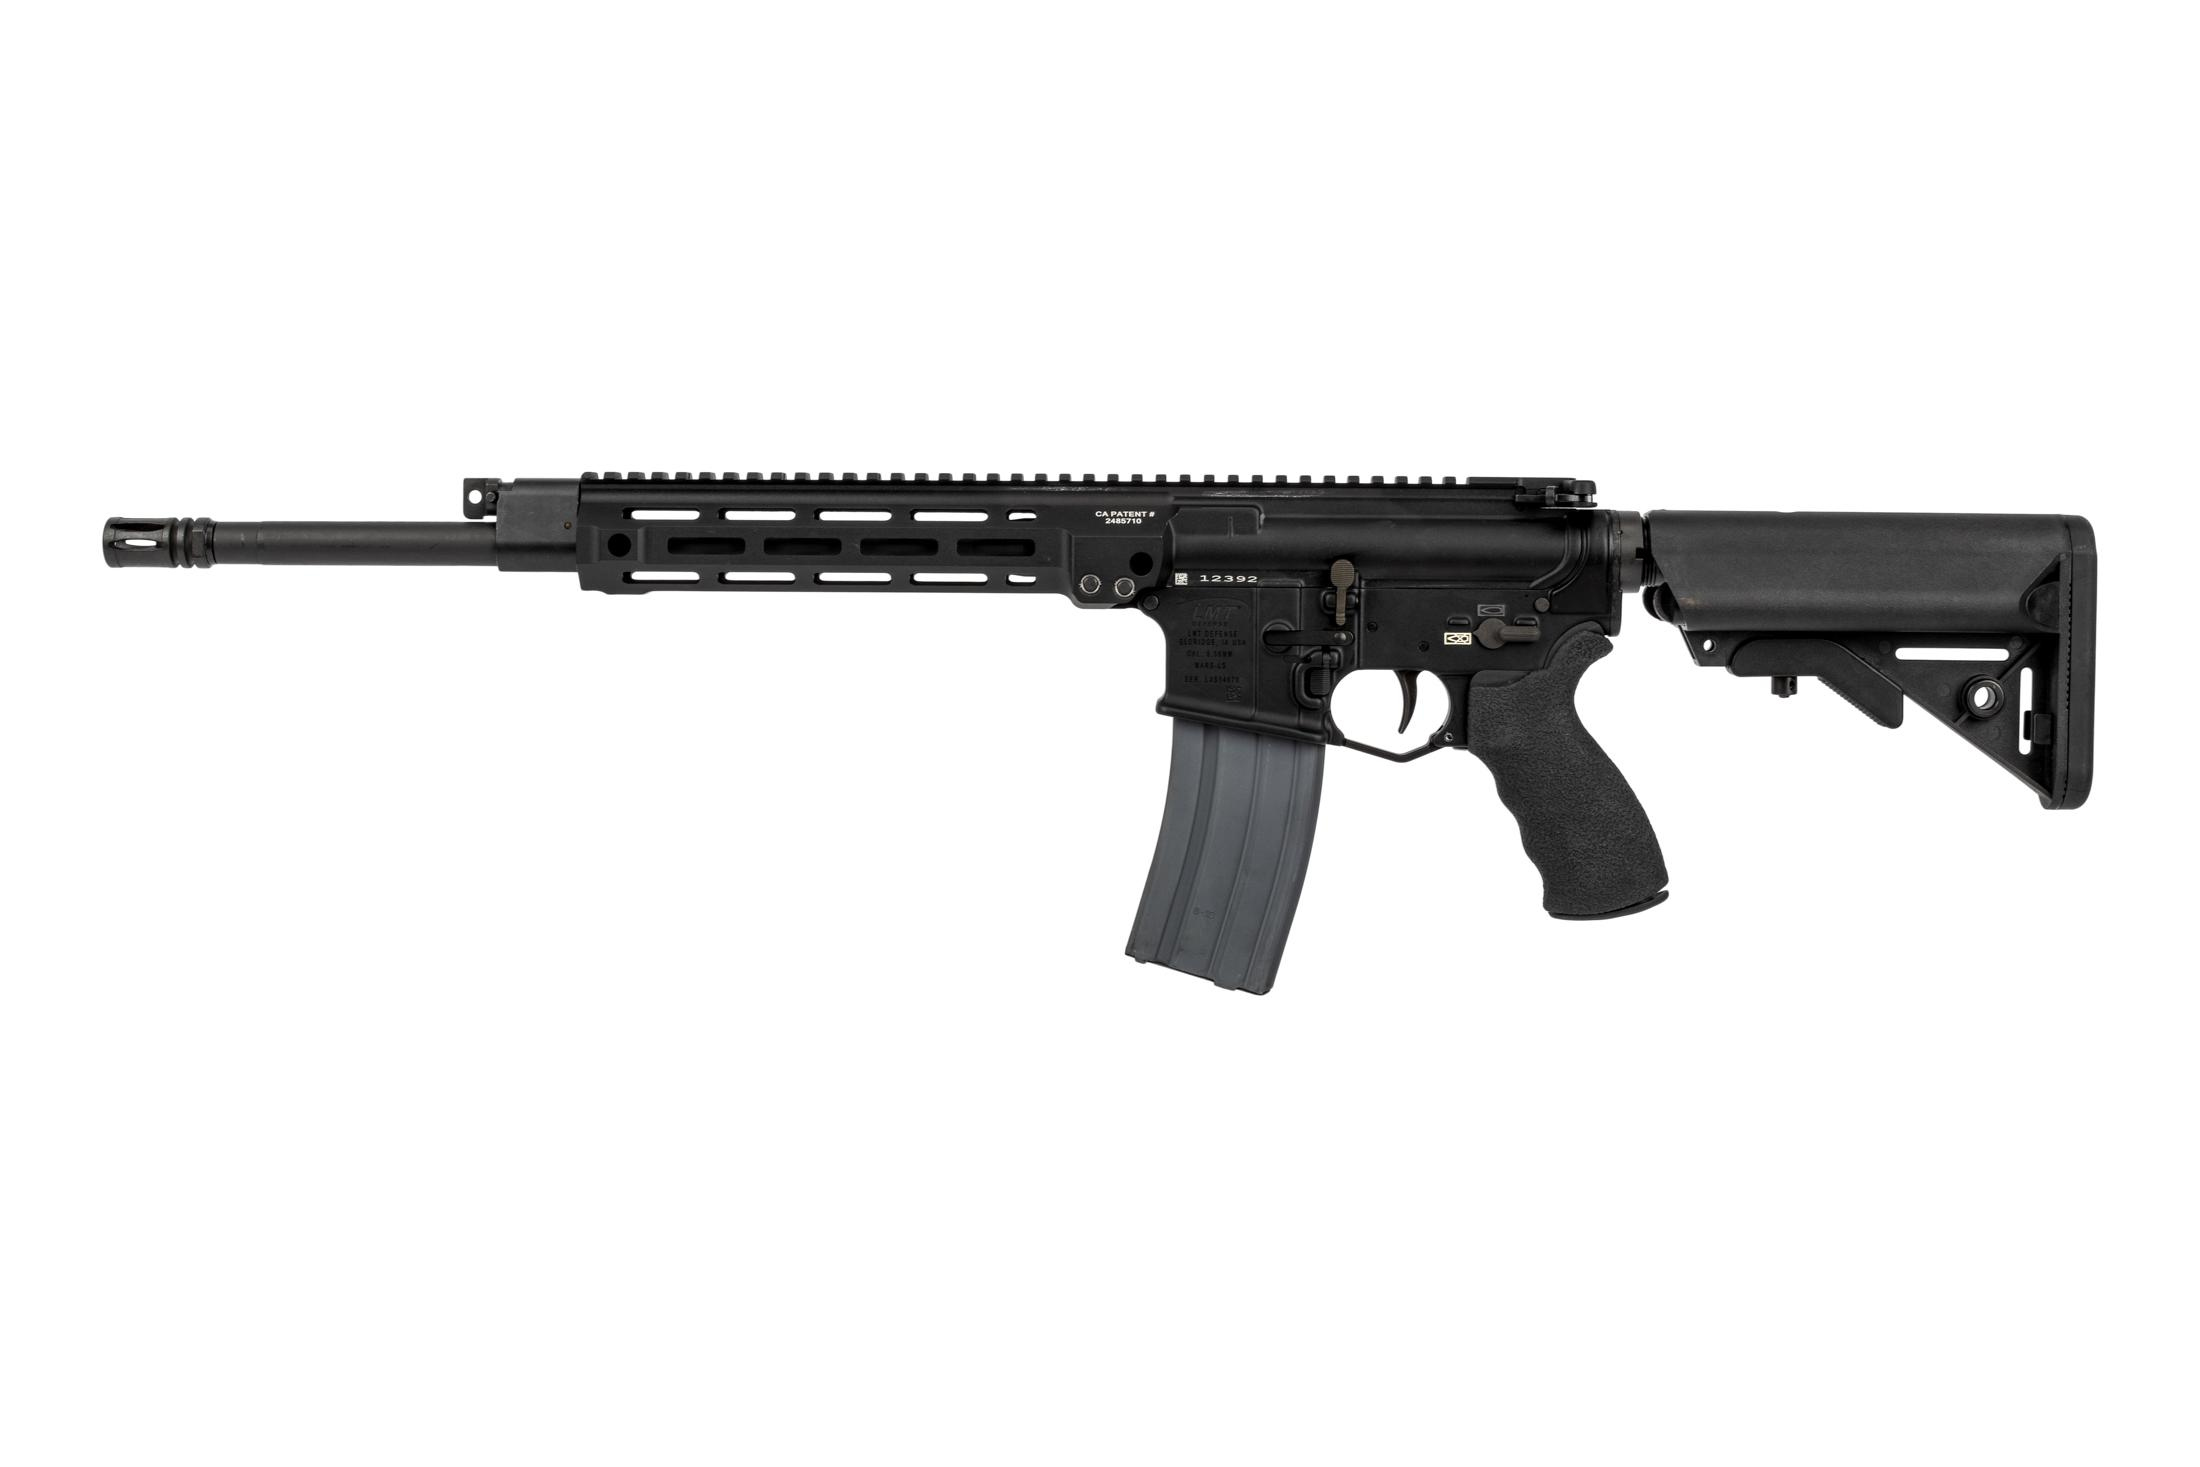 LMT MLC MARS Piston AR15 5.56 features fully ambidextrous controls